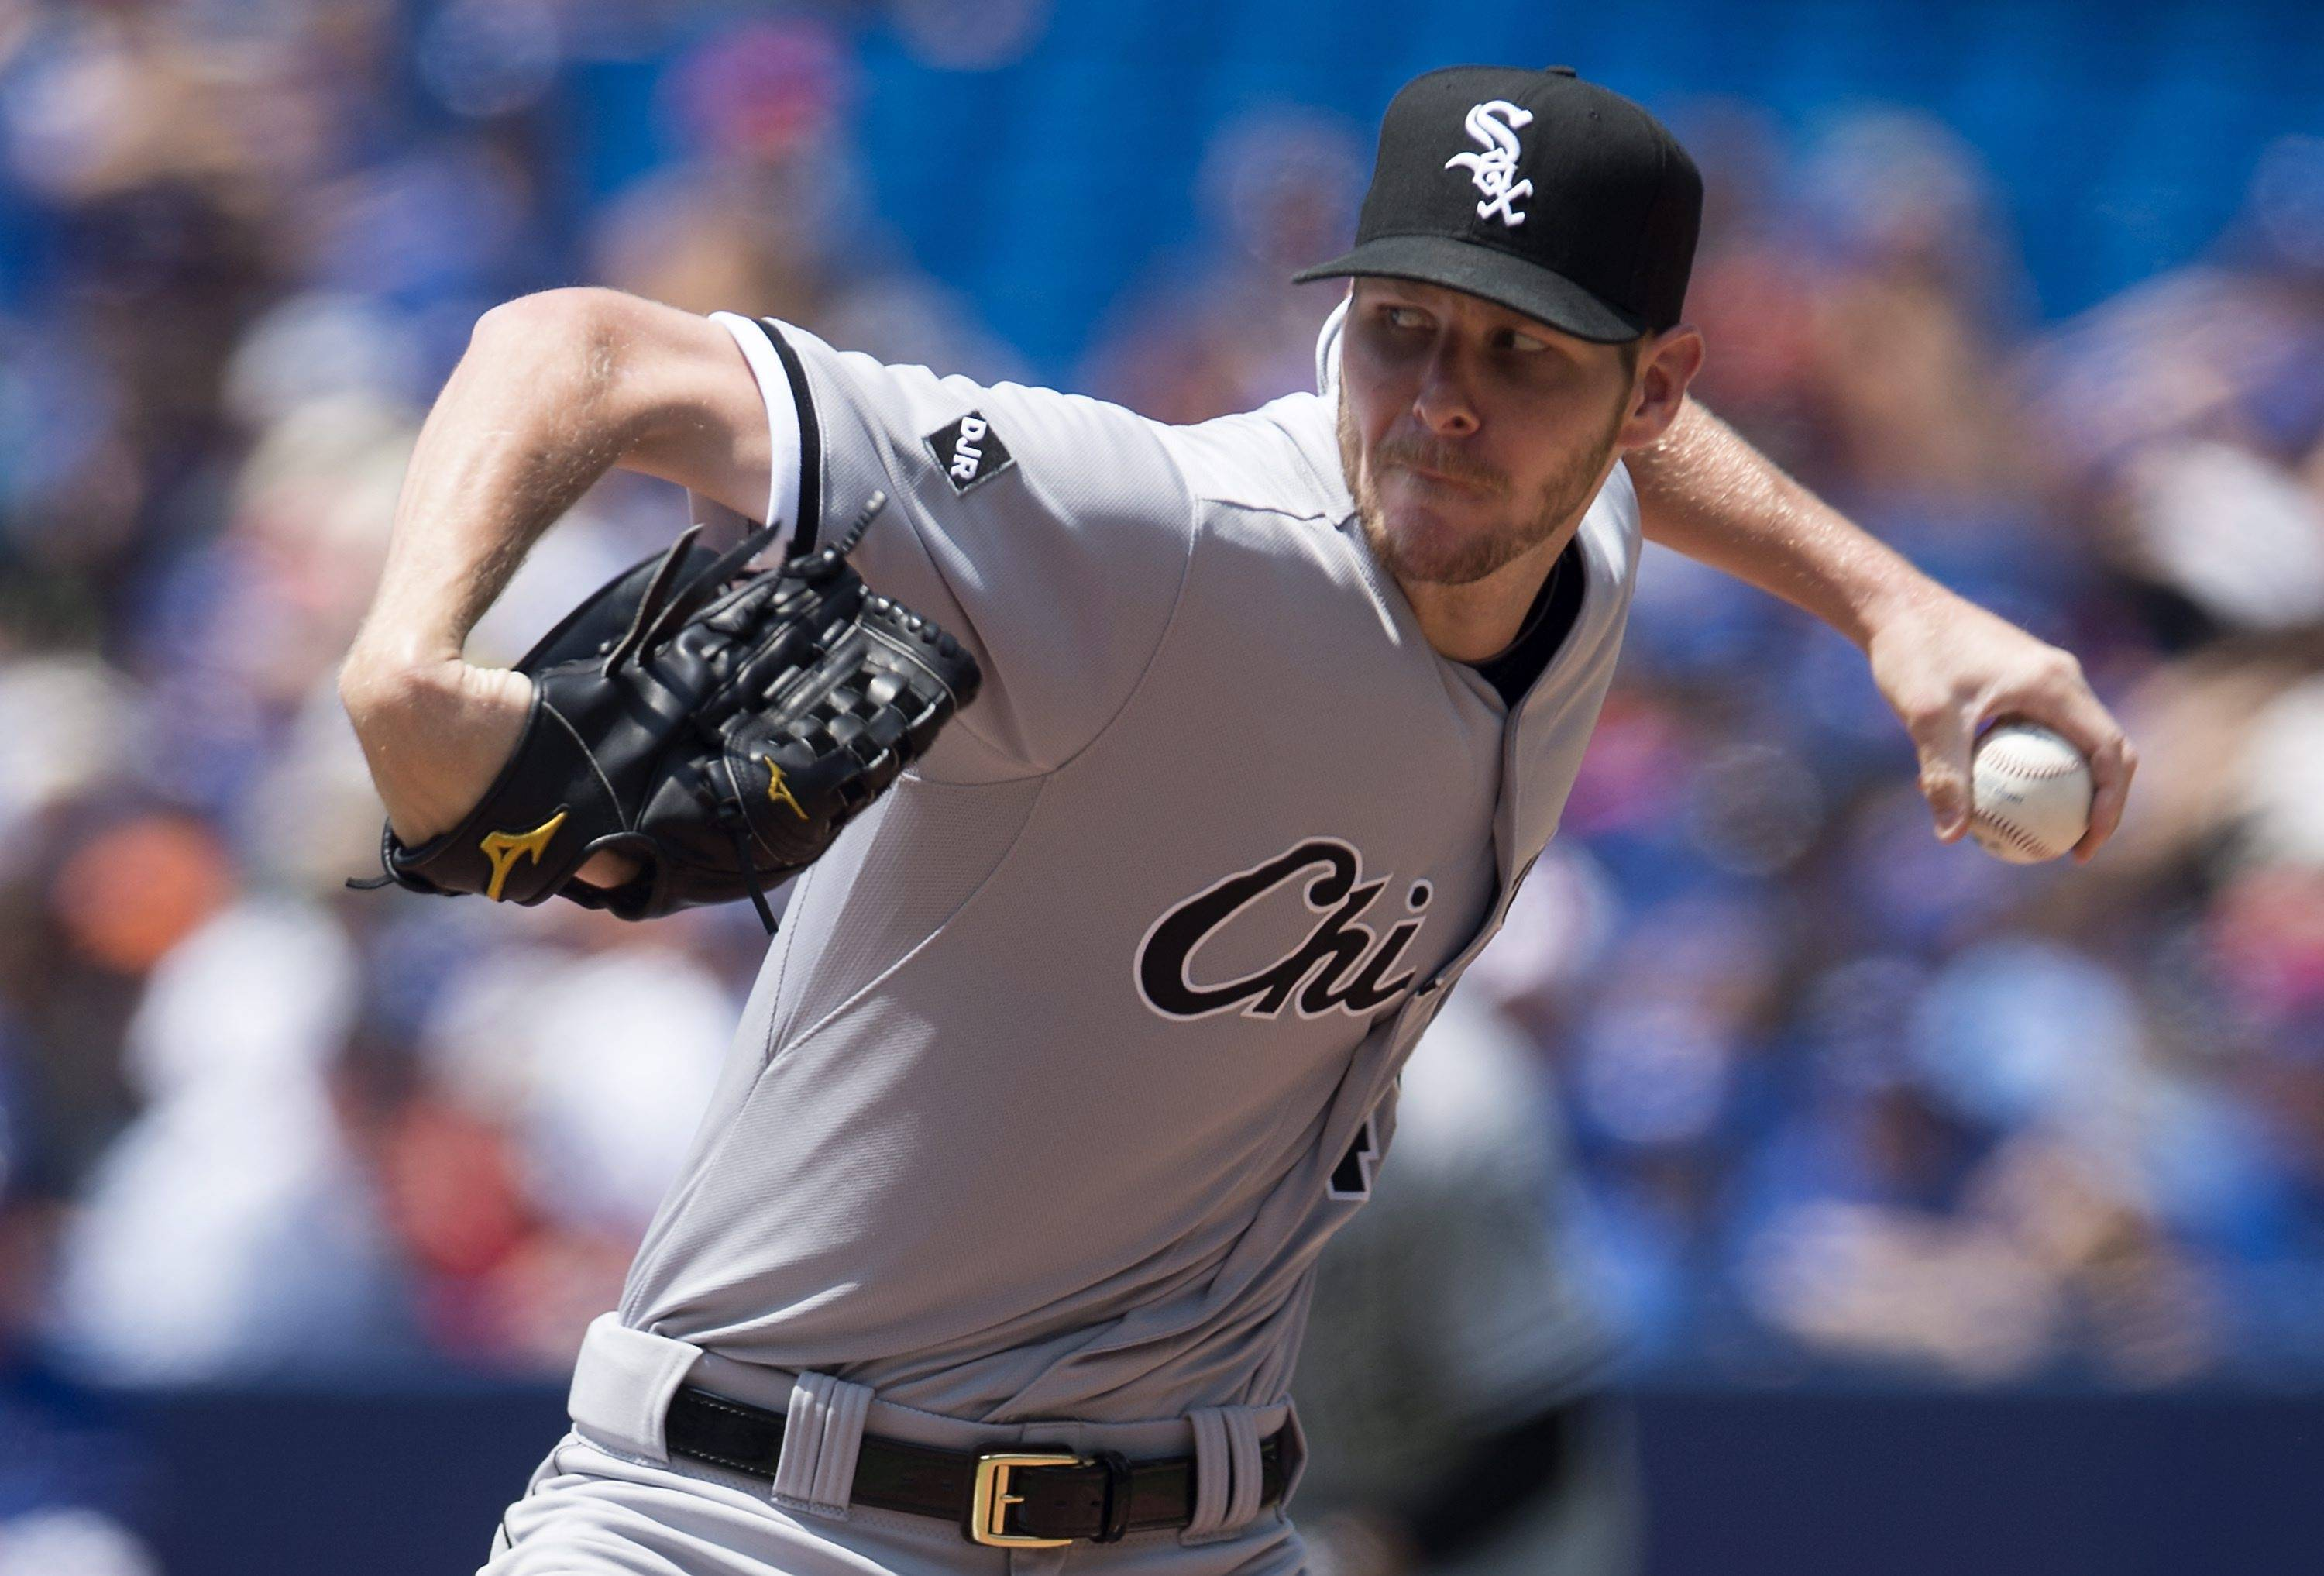 With a record of 8-1, White Sox starting pitcher Chris Sale deserves a spot on the All-Star Game roster, according to Mike North.